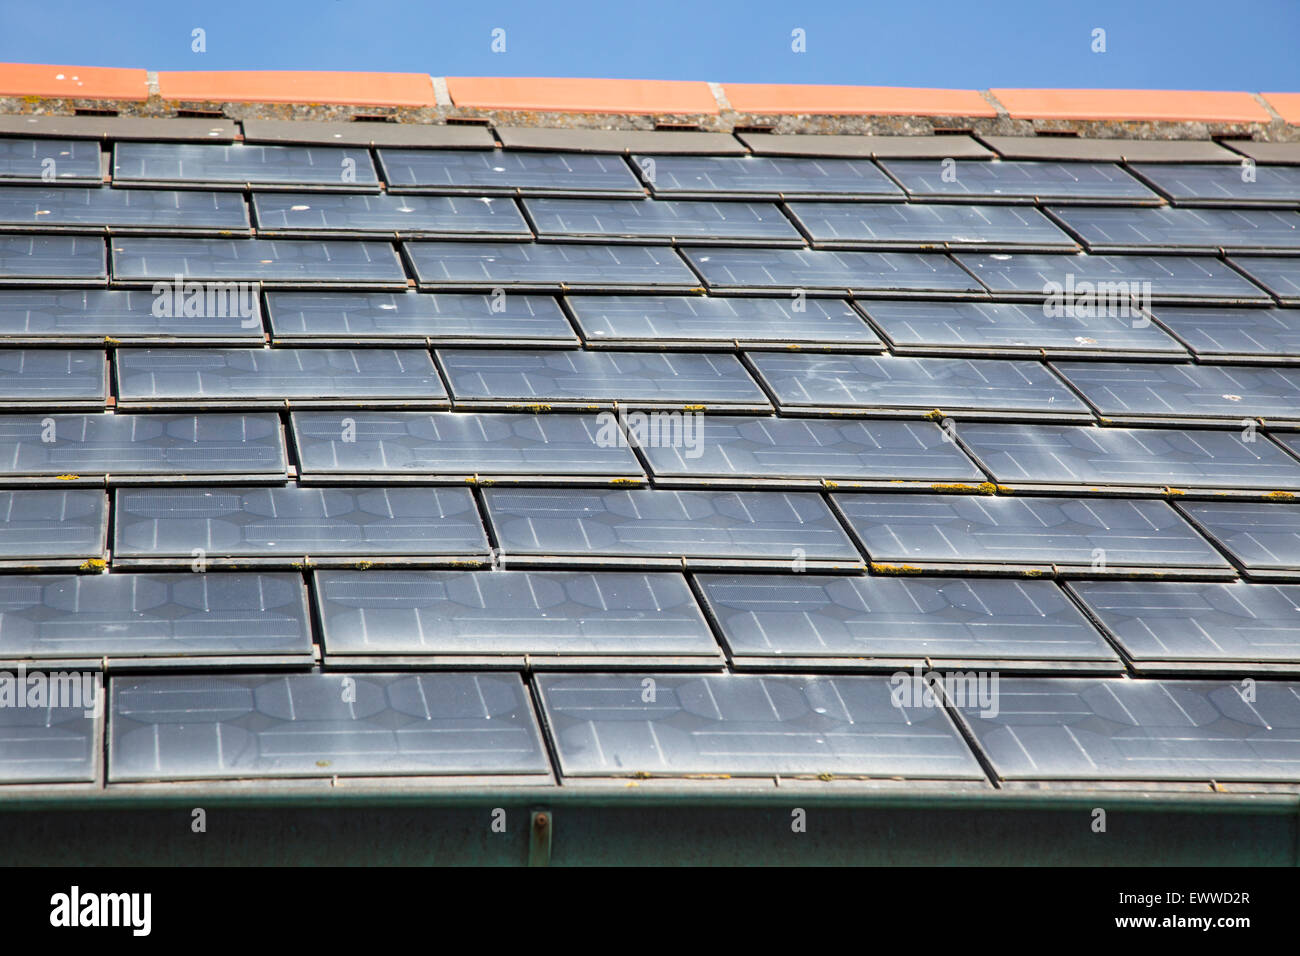 Close Up Of Photovoltaic Roof Tiles On Building Kynance